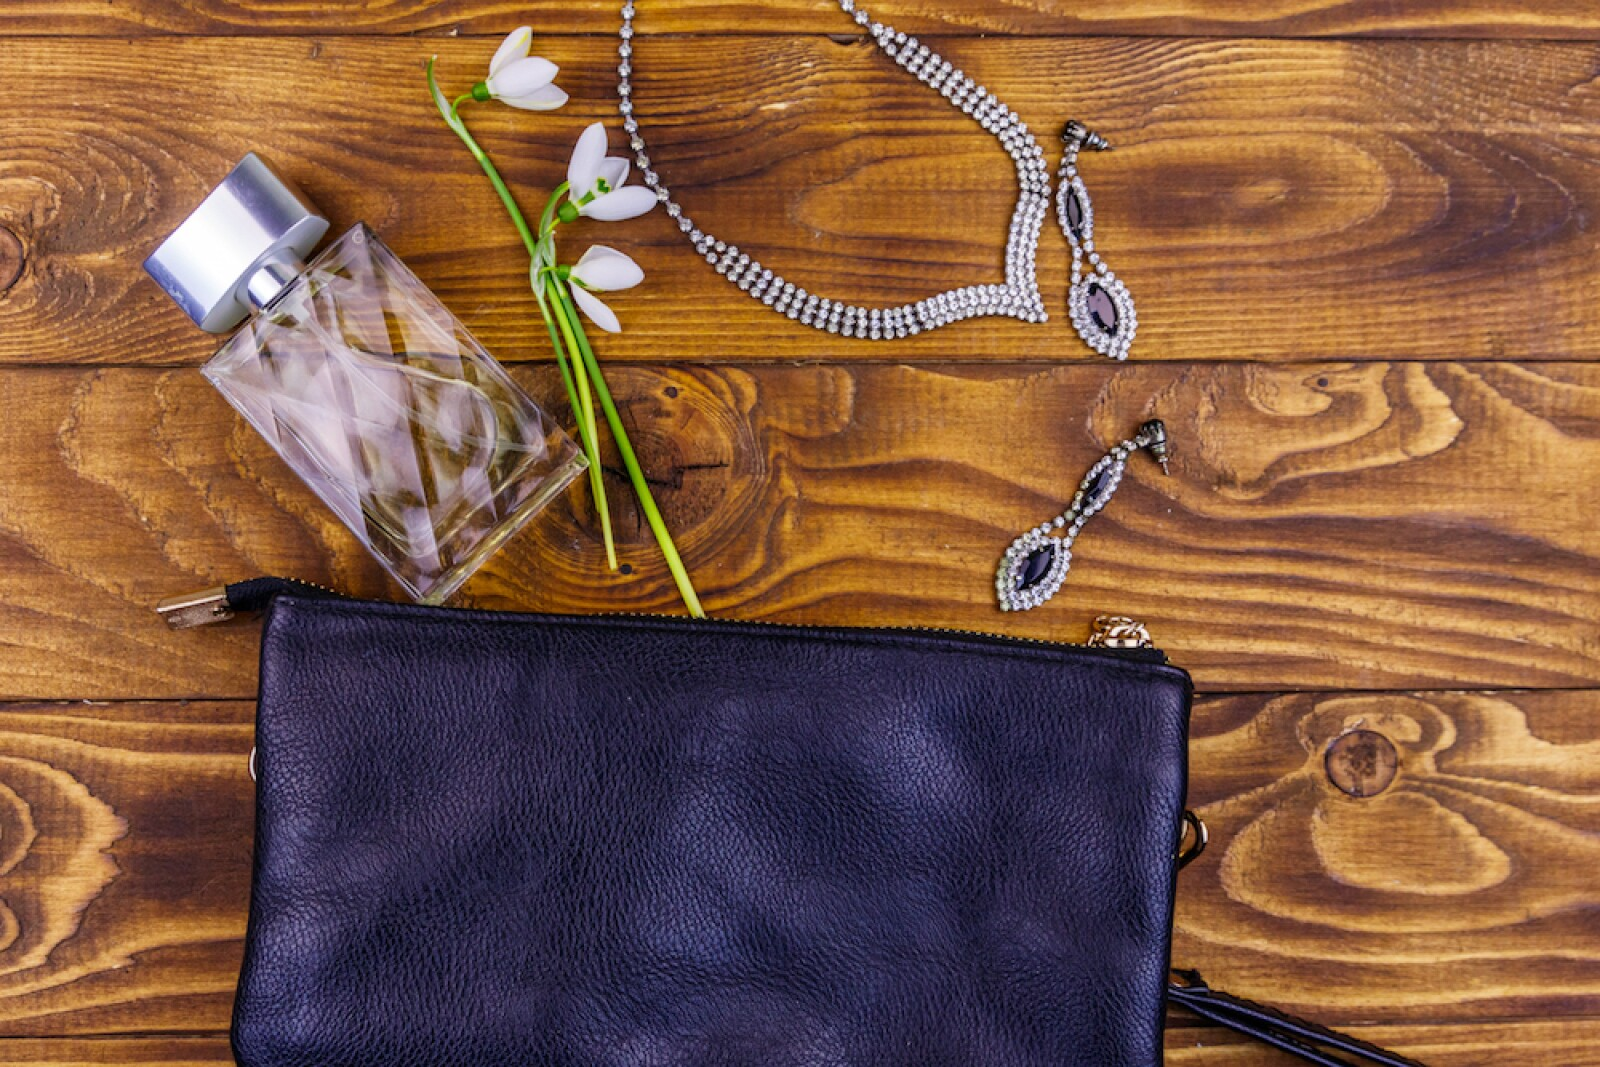 Women accessories on wooden background. Clutch bag, bottle of perfume, necklace, earrings and snowdrops on wood table. Beauty and fashion composition. Top view, flat lay